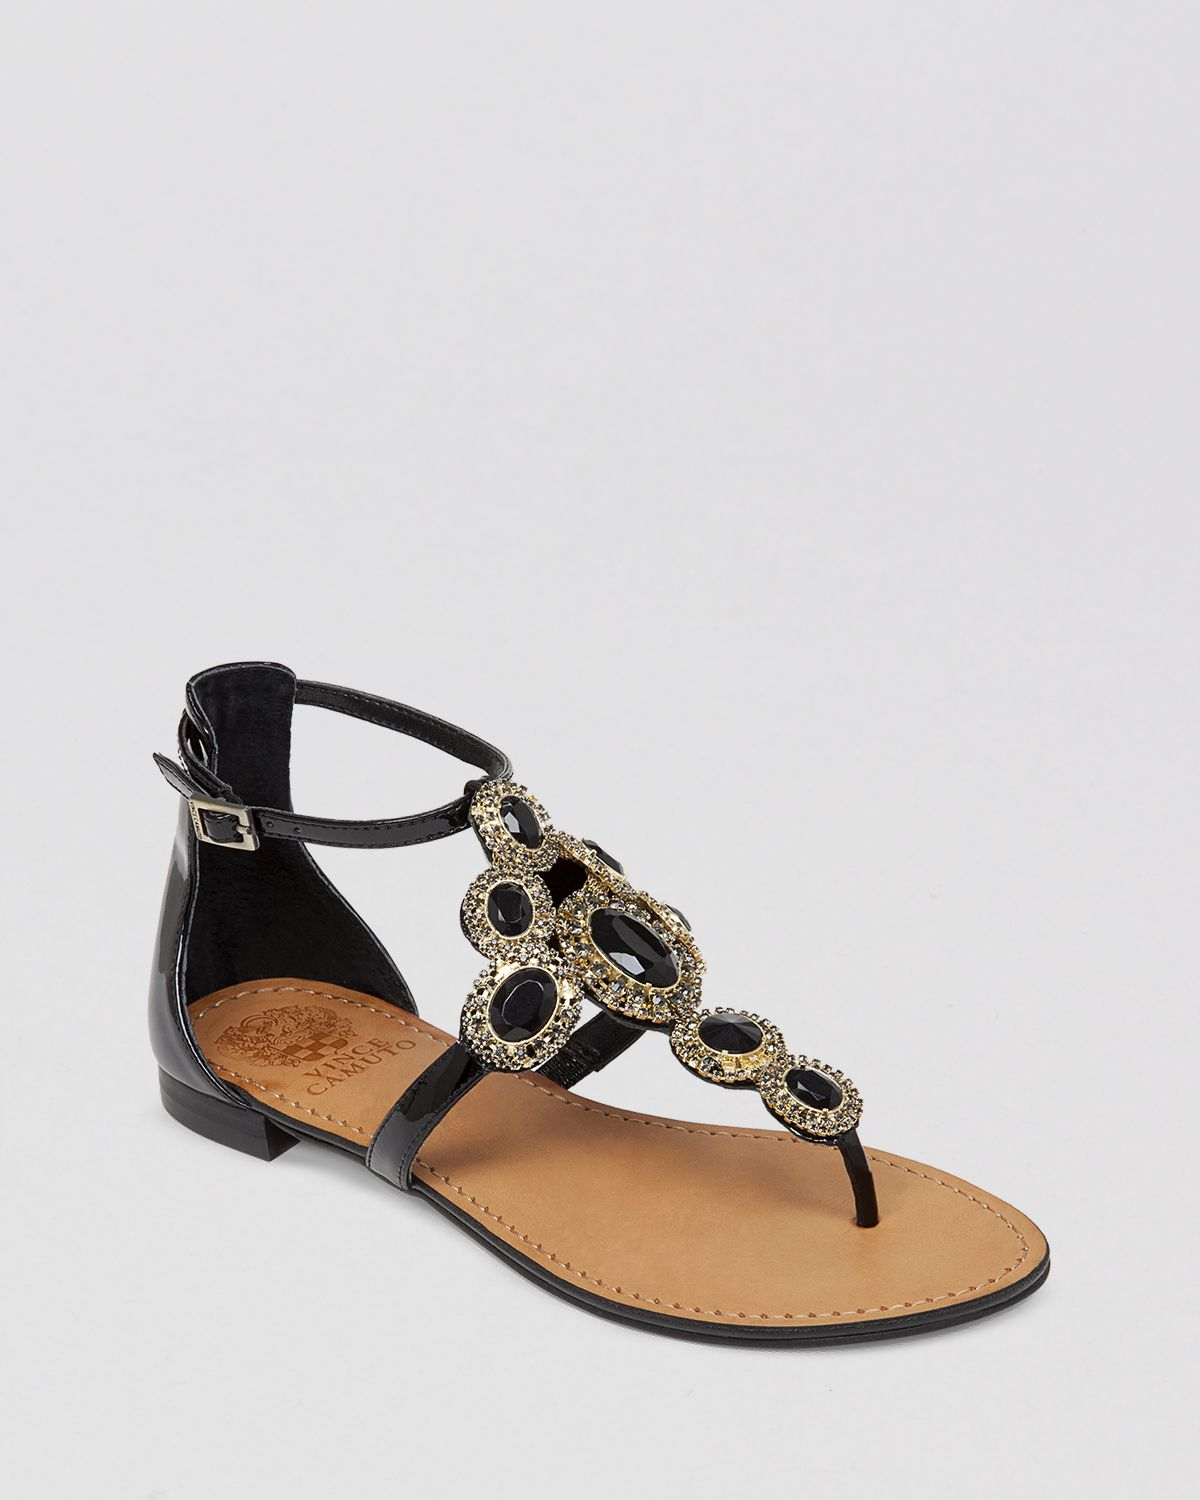 Lyst Vince Camuto Jeweled Thong Flat Sandals Manelle